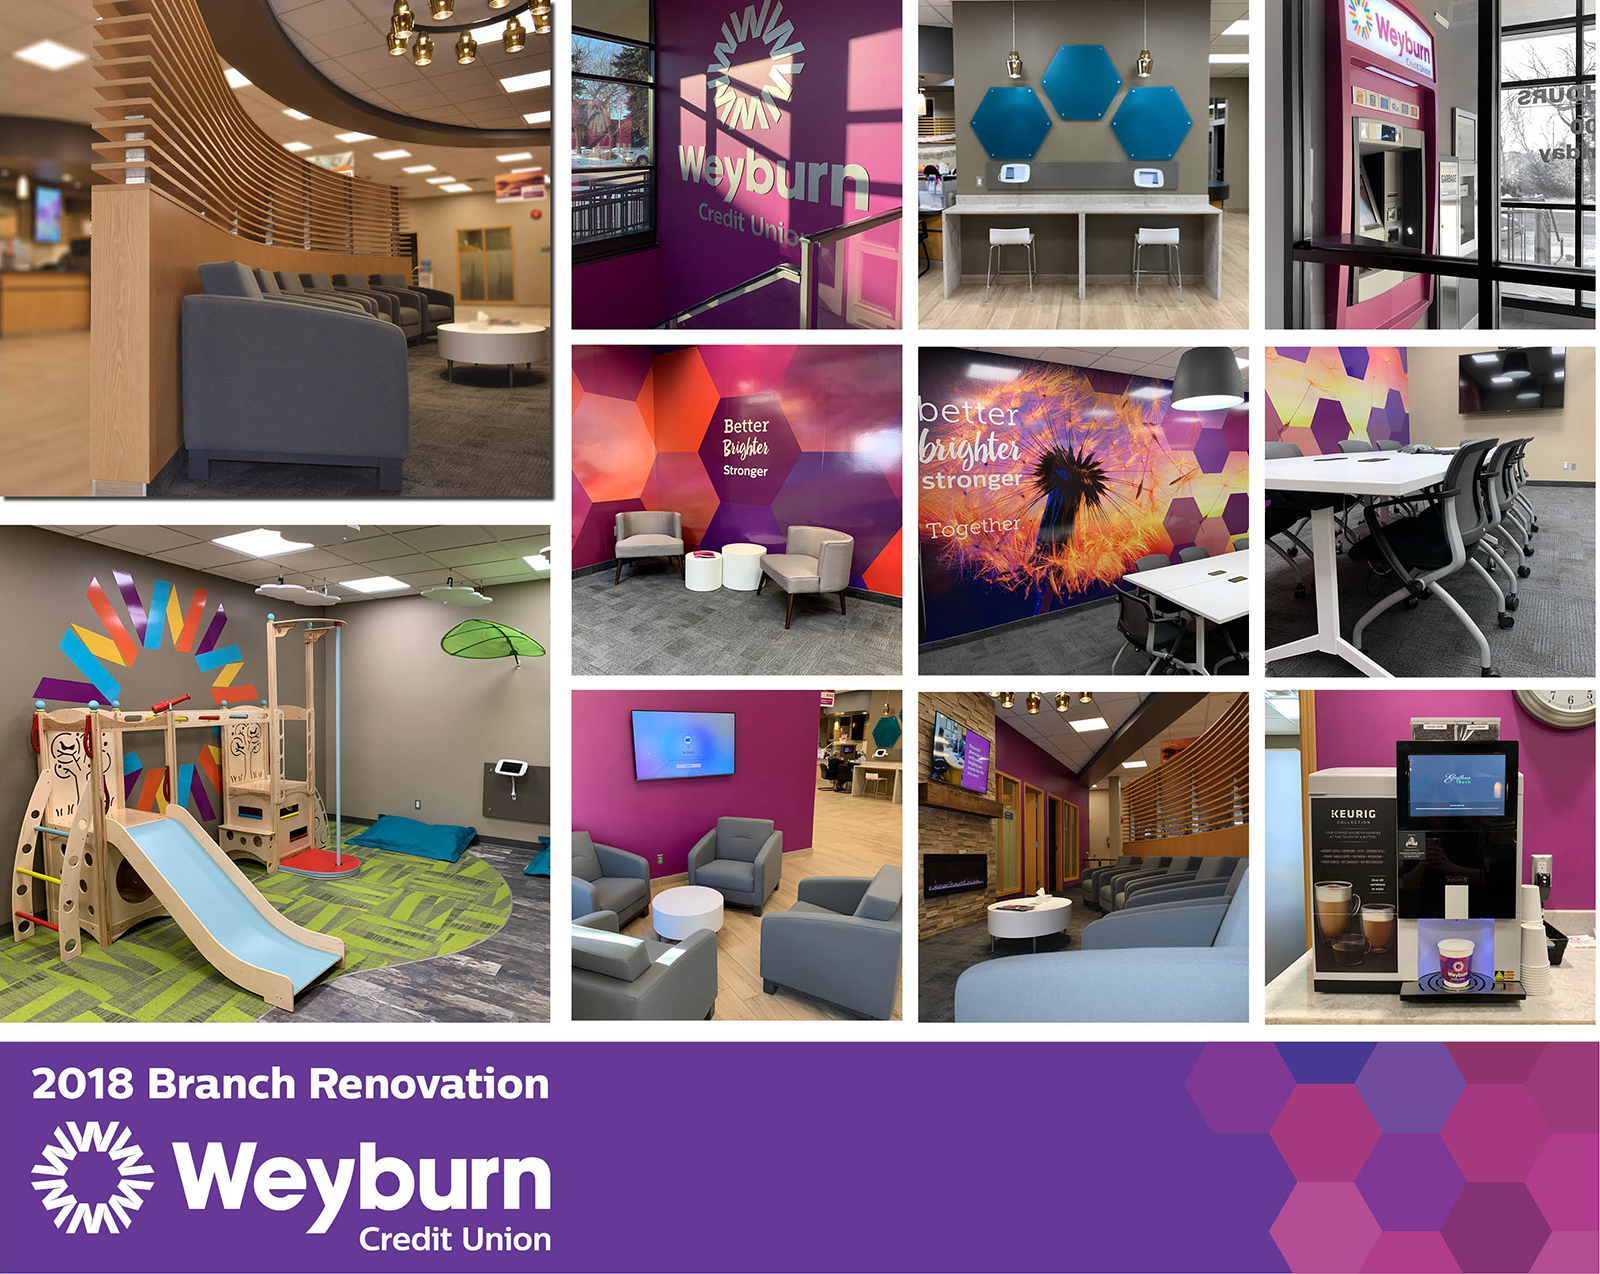 Collage of new Weyburn branch with a play area for children, collaborate and colours workspaces, ATM, lobby seating area.